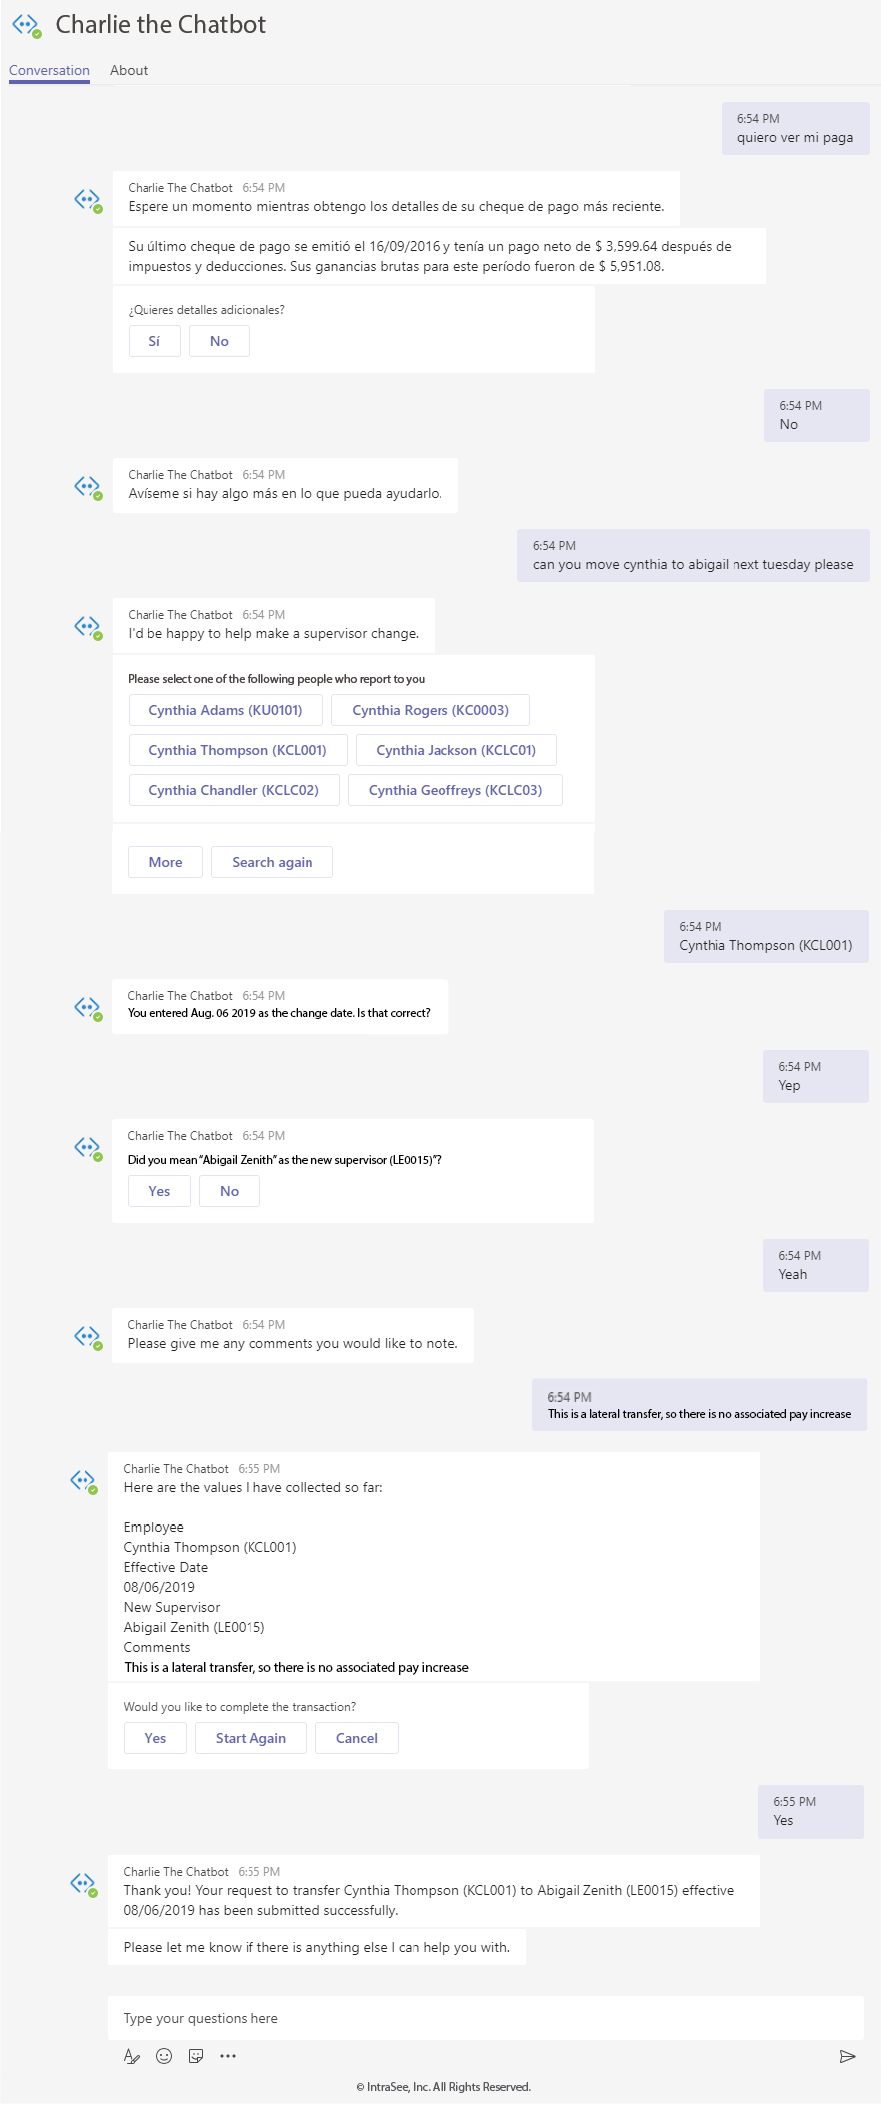 MS Teams Chatbot